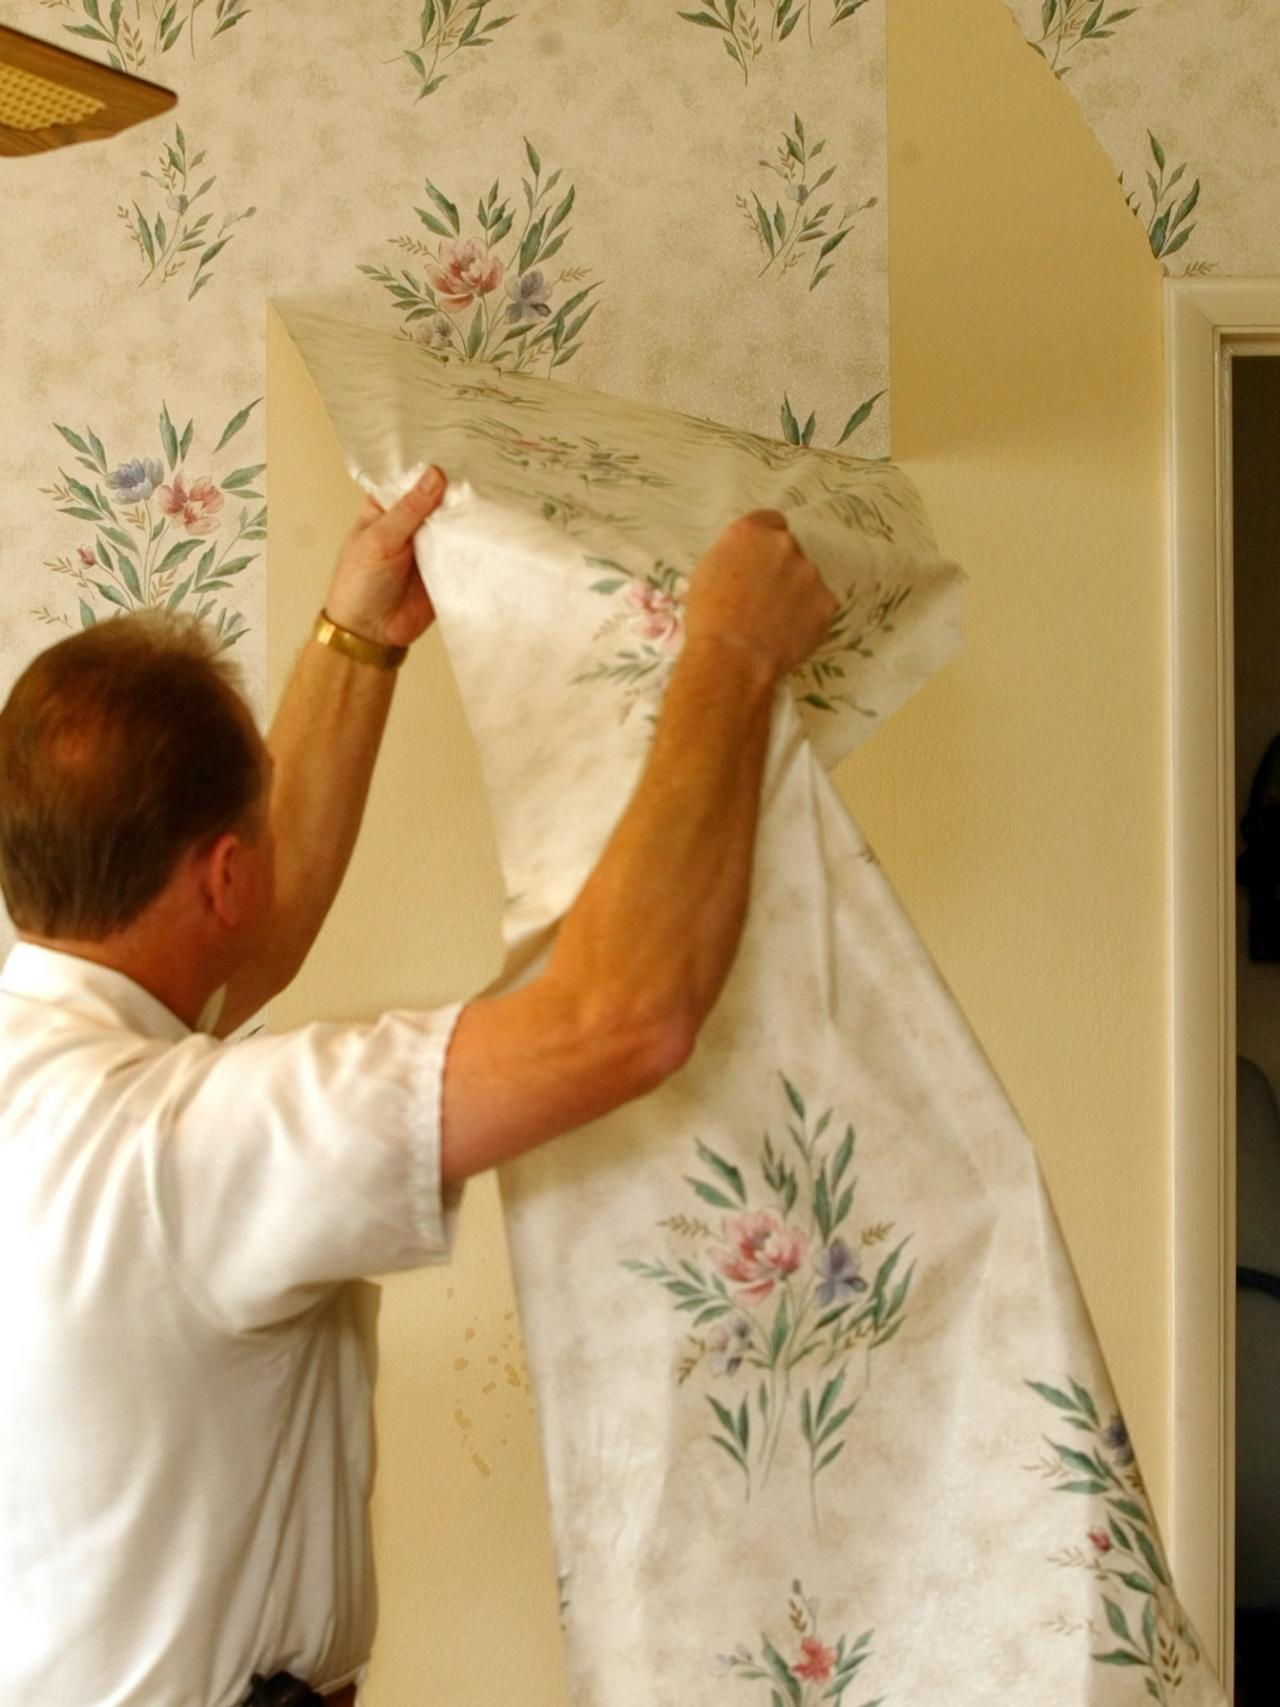 wallpaper contractor demonstrates the proper way to remove wallpaper 1280x1707